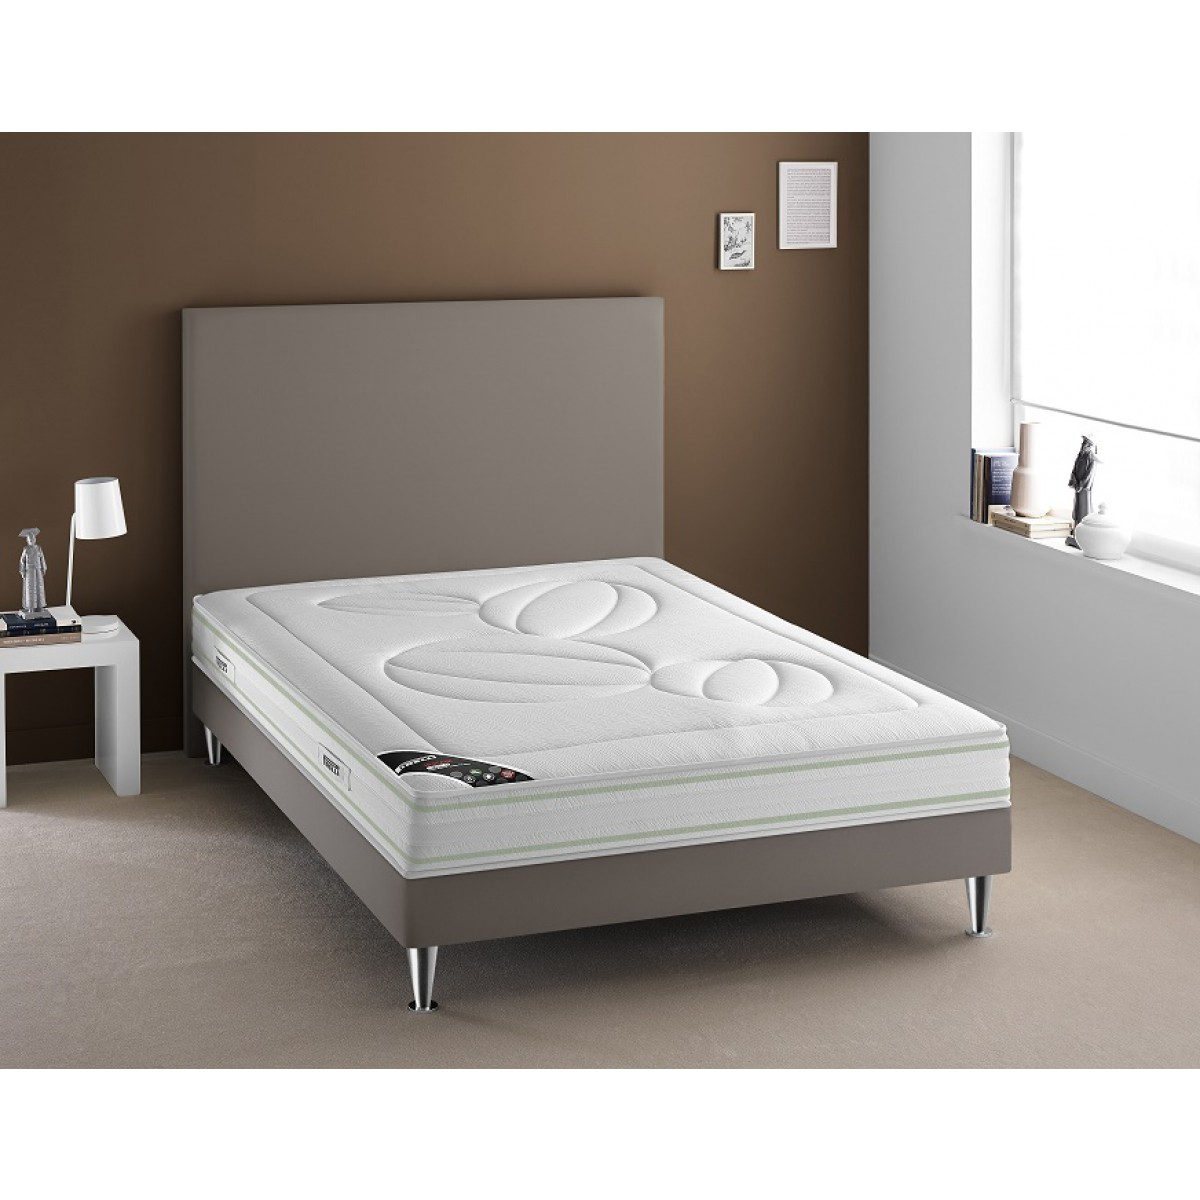 pirelli matelas latex maison design. Black Bedroom Furniture Sets. Home Design Ideas